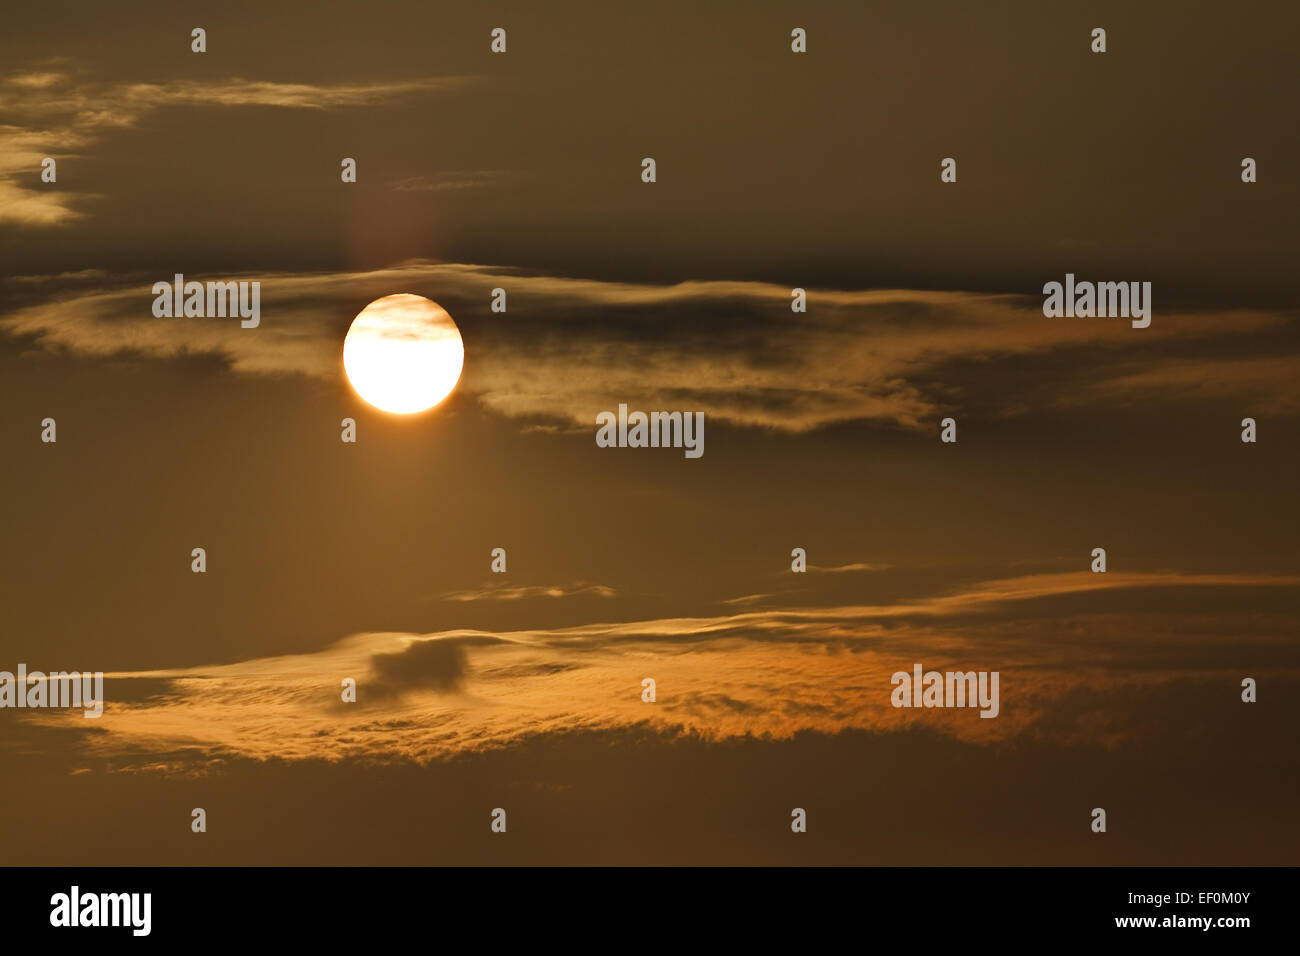 A sunset. - Stock Image